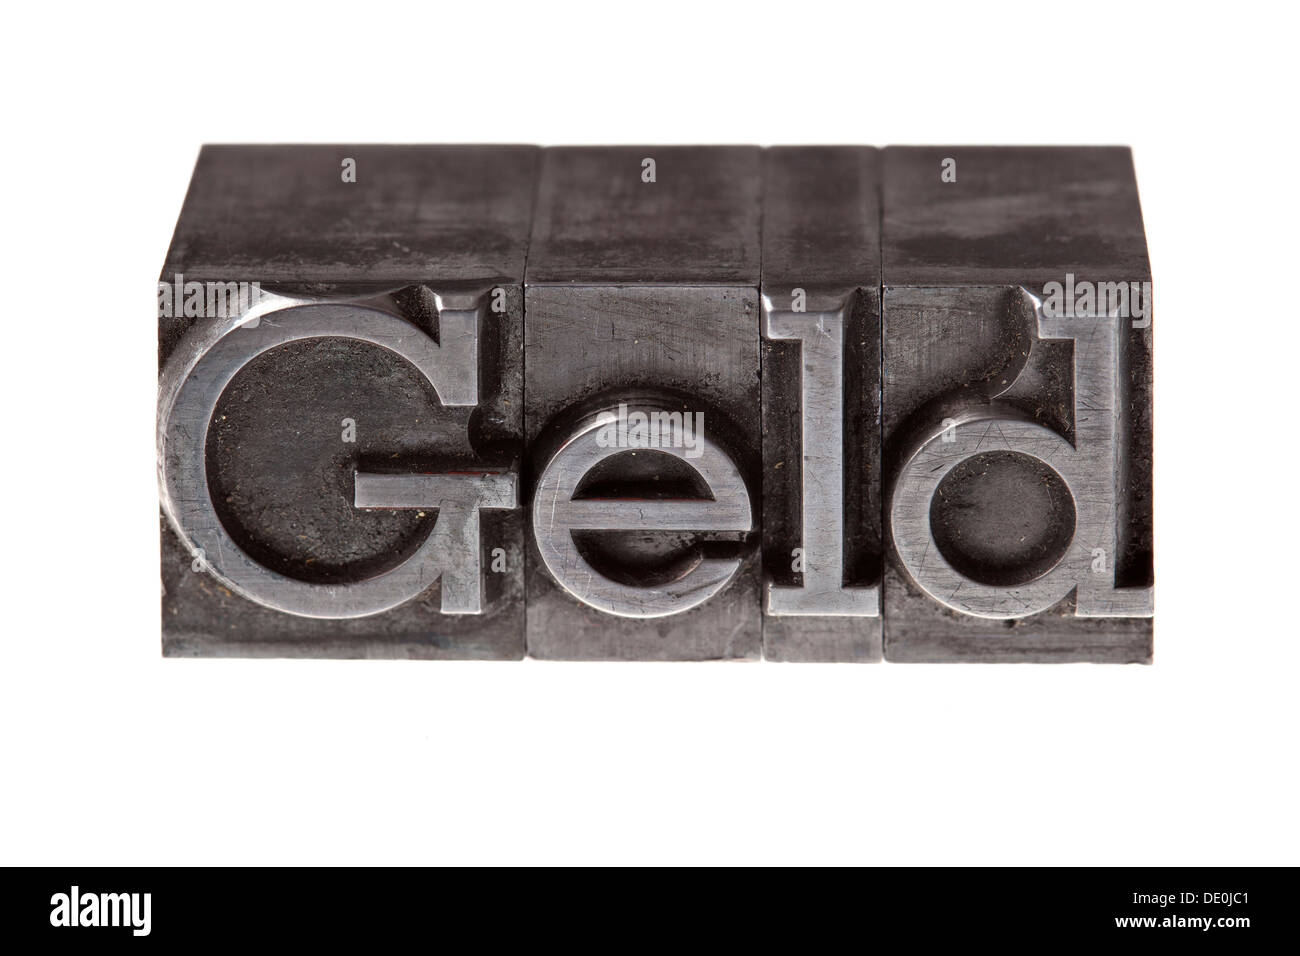 Old lead letters forming the word 'Geld', German for 'money' - Stock Image